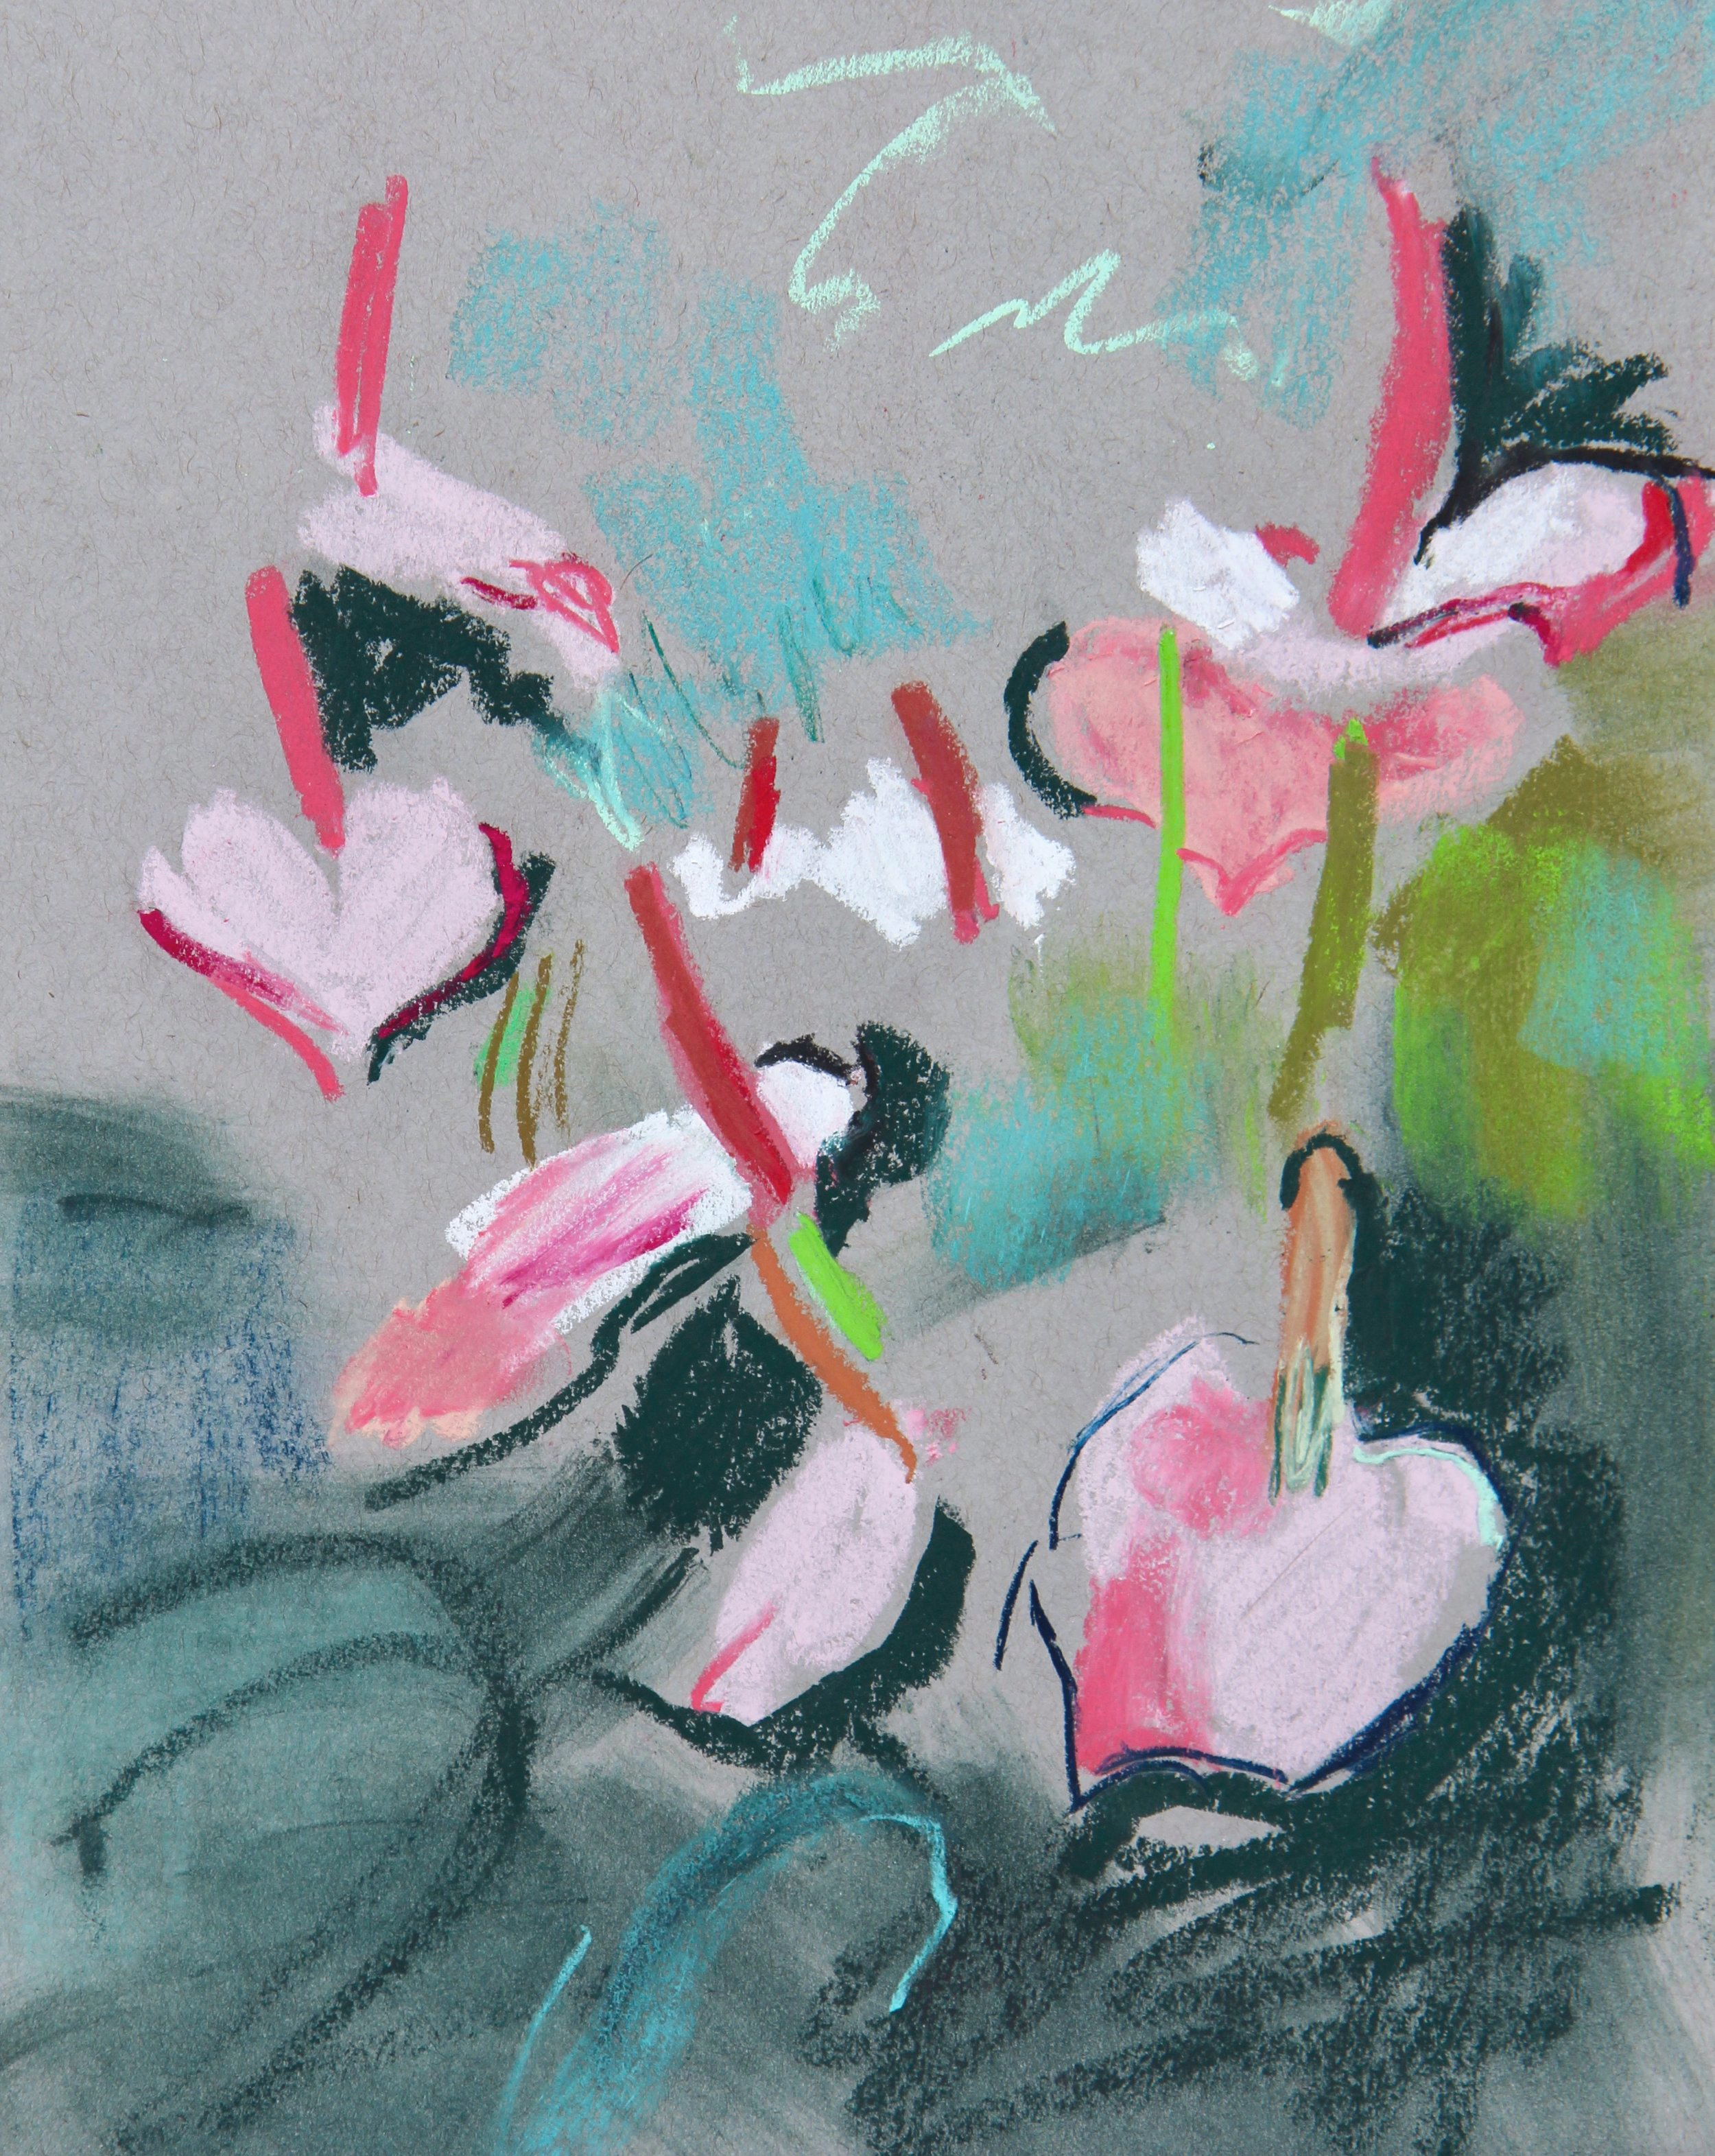 plant study - anthuriums - 21 x 29cm, pastels on grey paper. Mounted on acid-free board £125